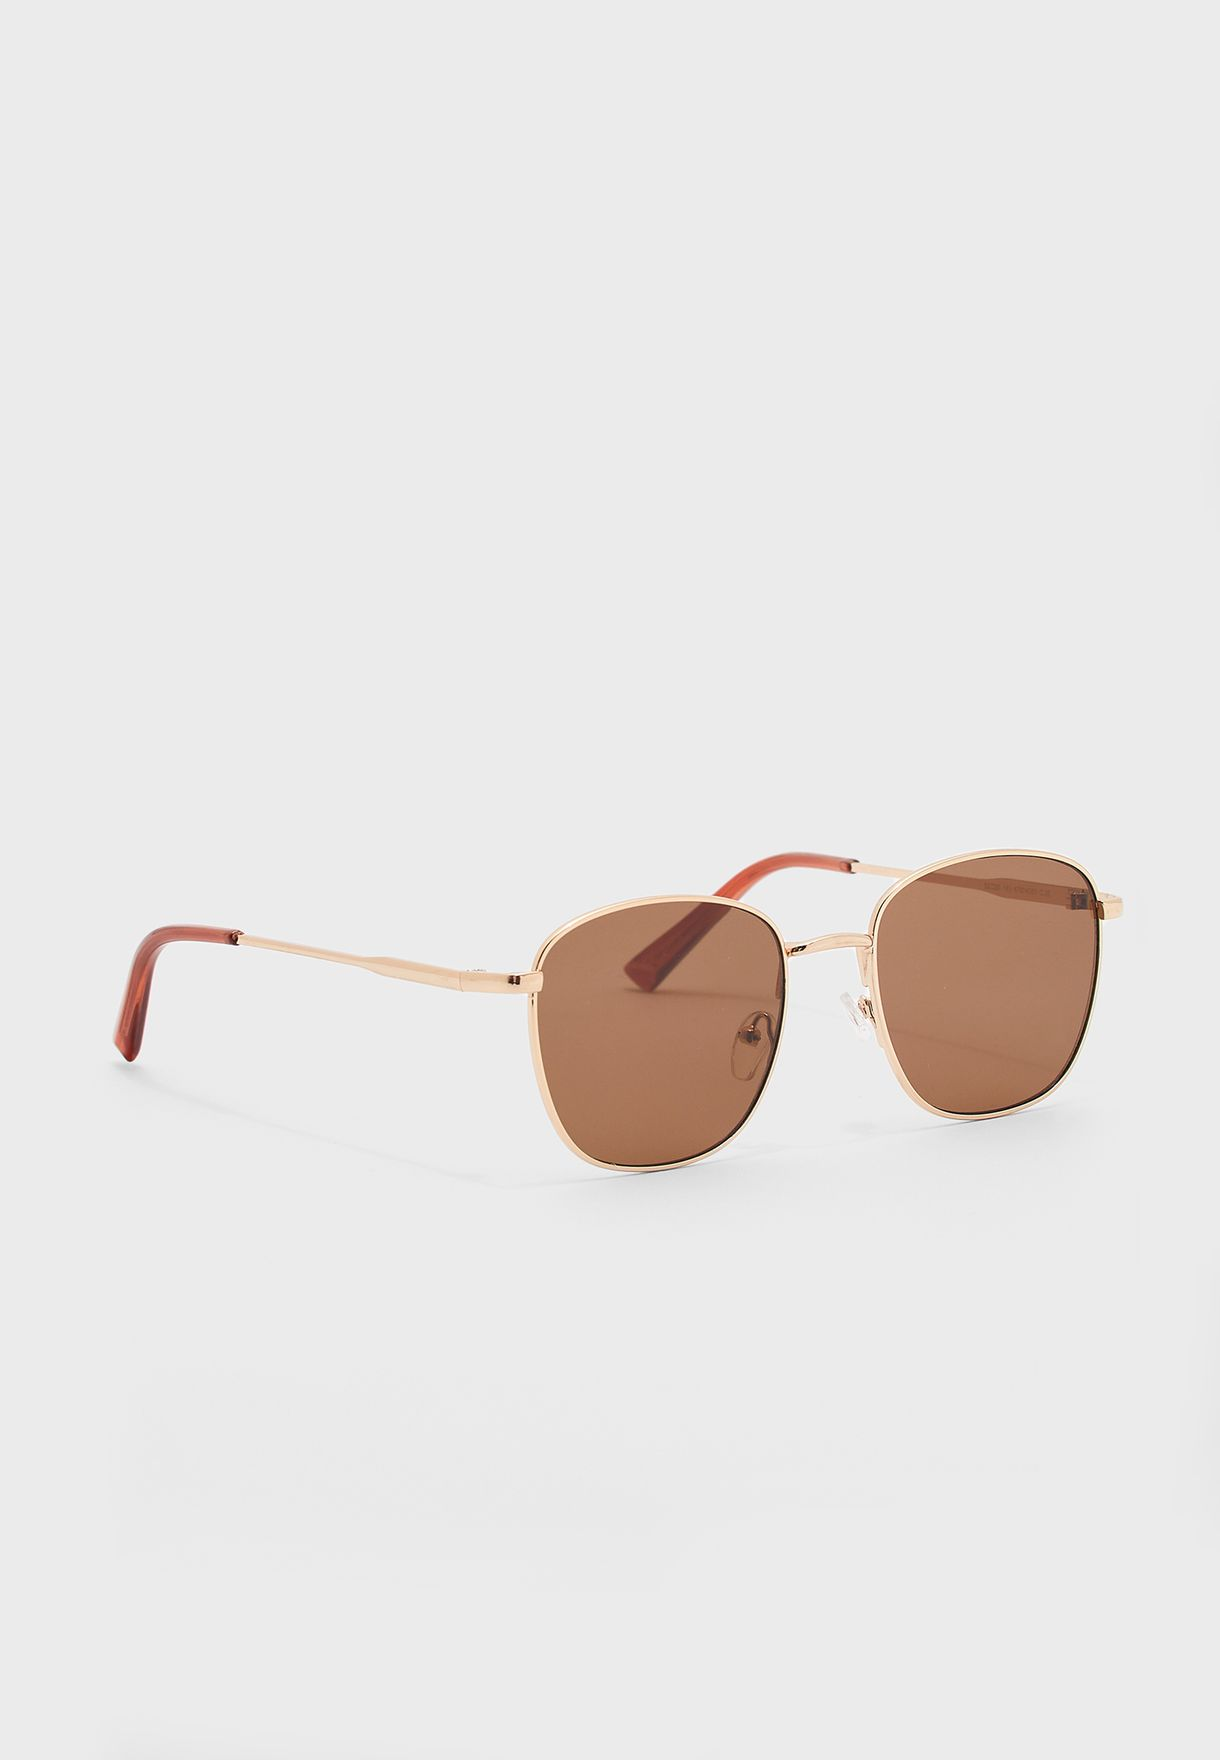 Nolita Full Frame Square Sunglasses